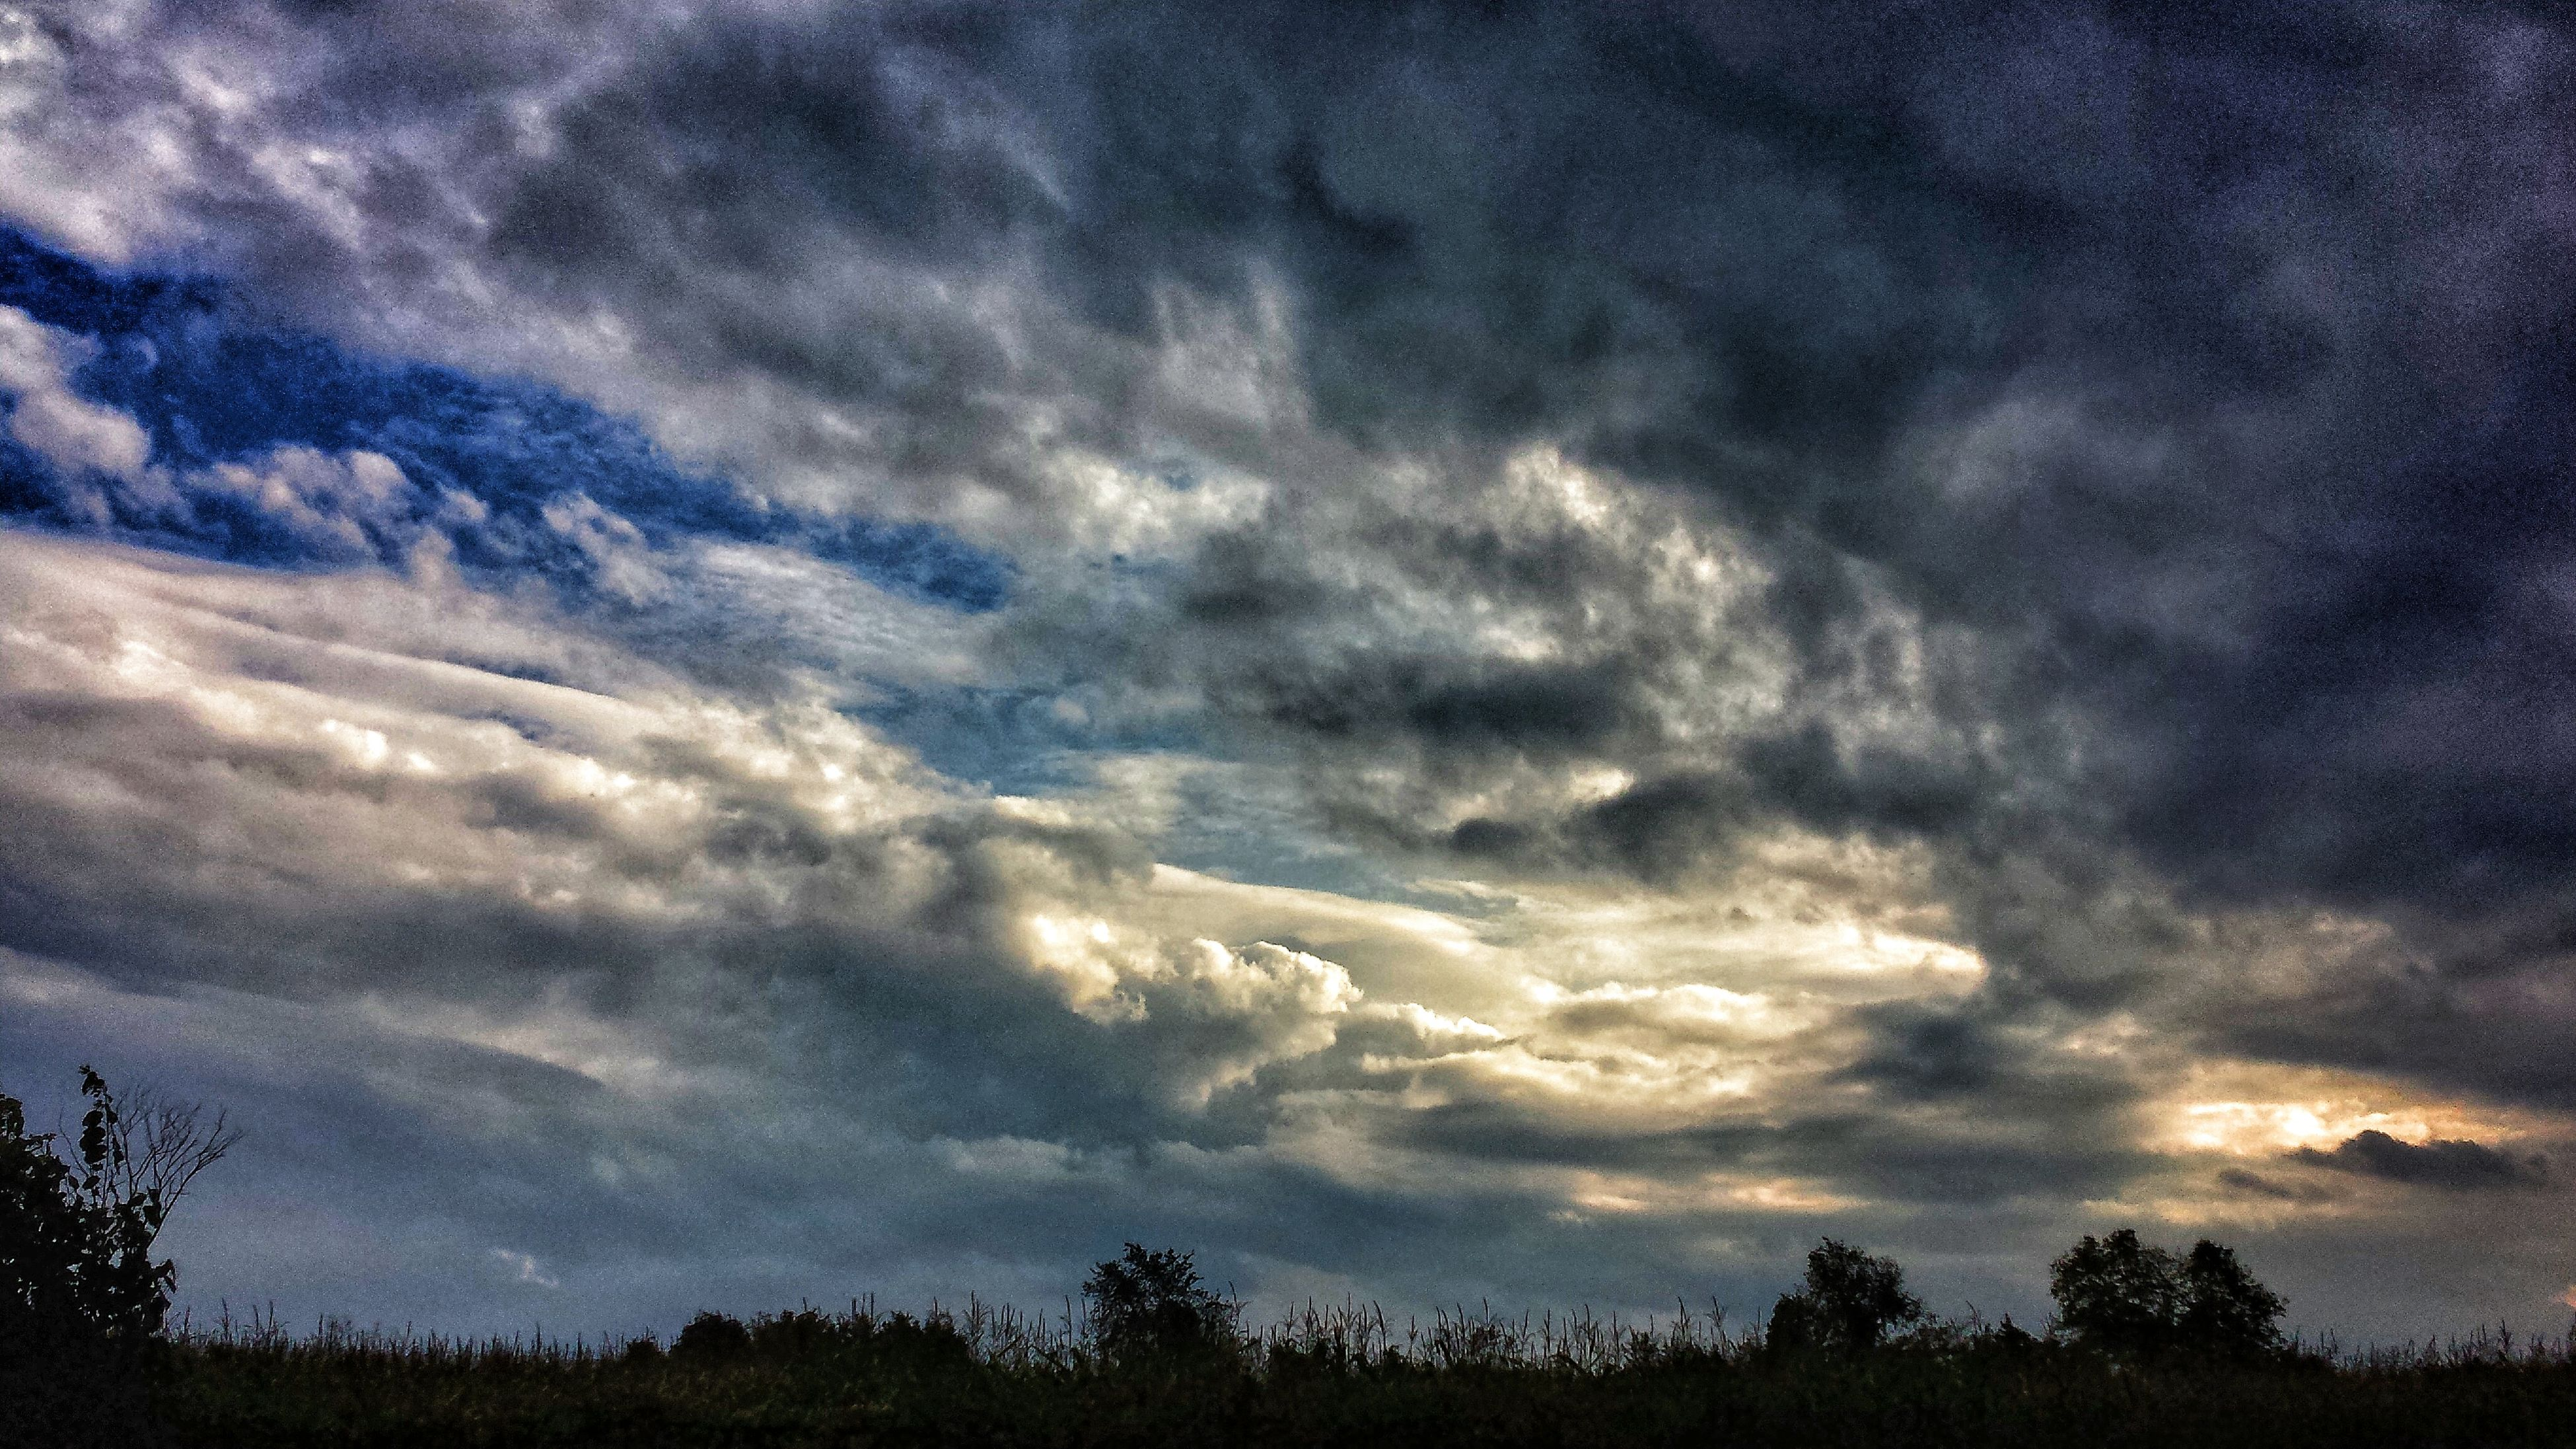 sky, tree, cloud - sky, tranquility, tranquil scene, scenics, beauty in nature, cloudy, low angle view, silhouette, nature, cloud, weather, cloudscape, idyllic, overcast, dramatic sky, storm cloud, growth, outdoors